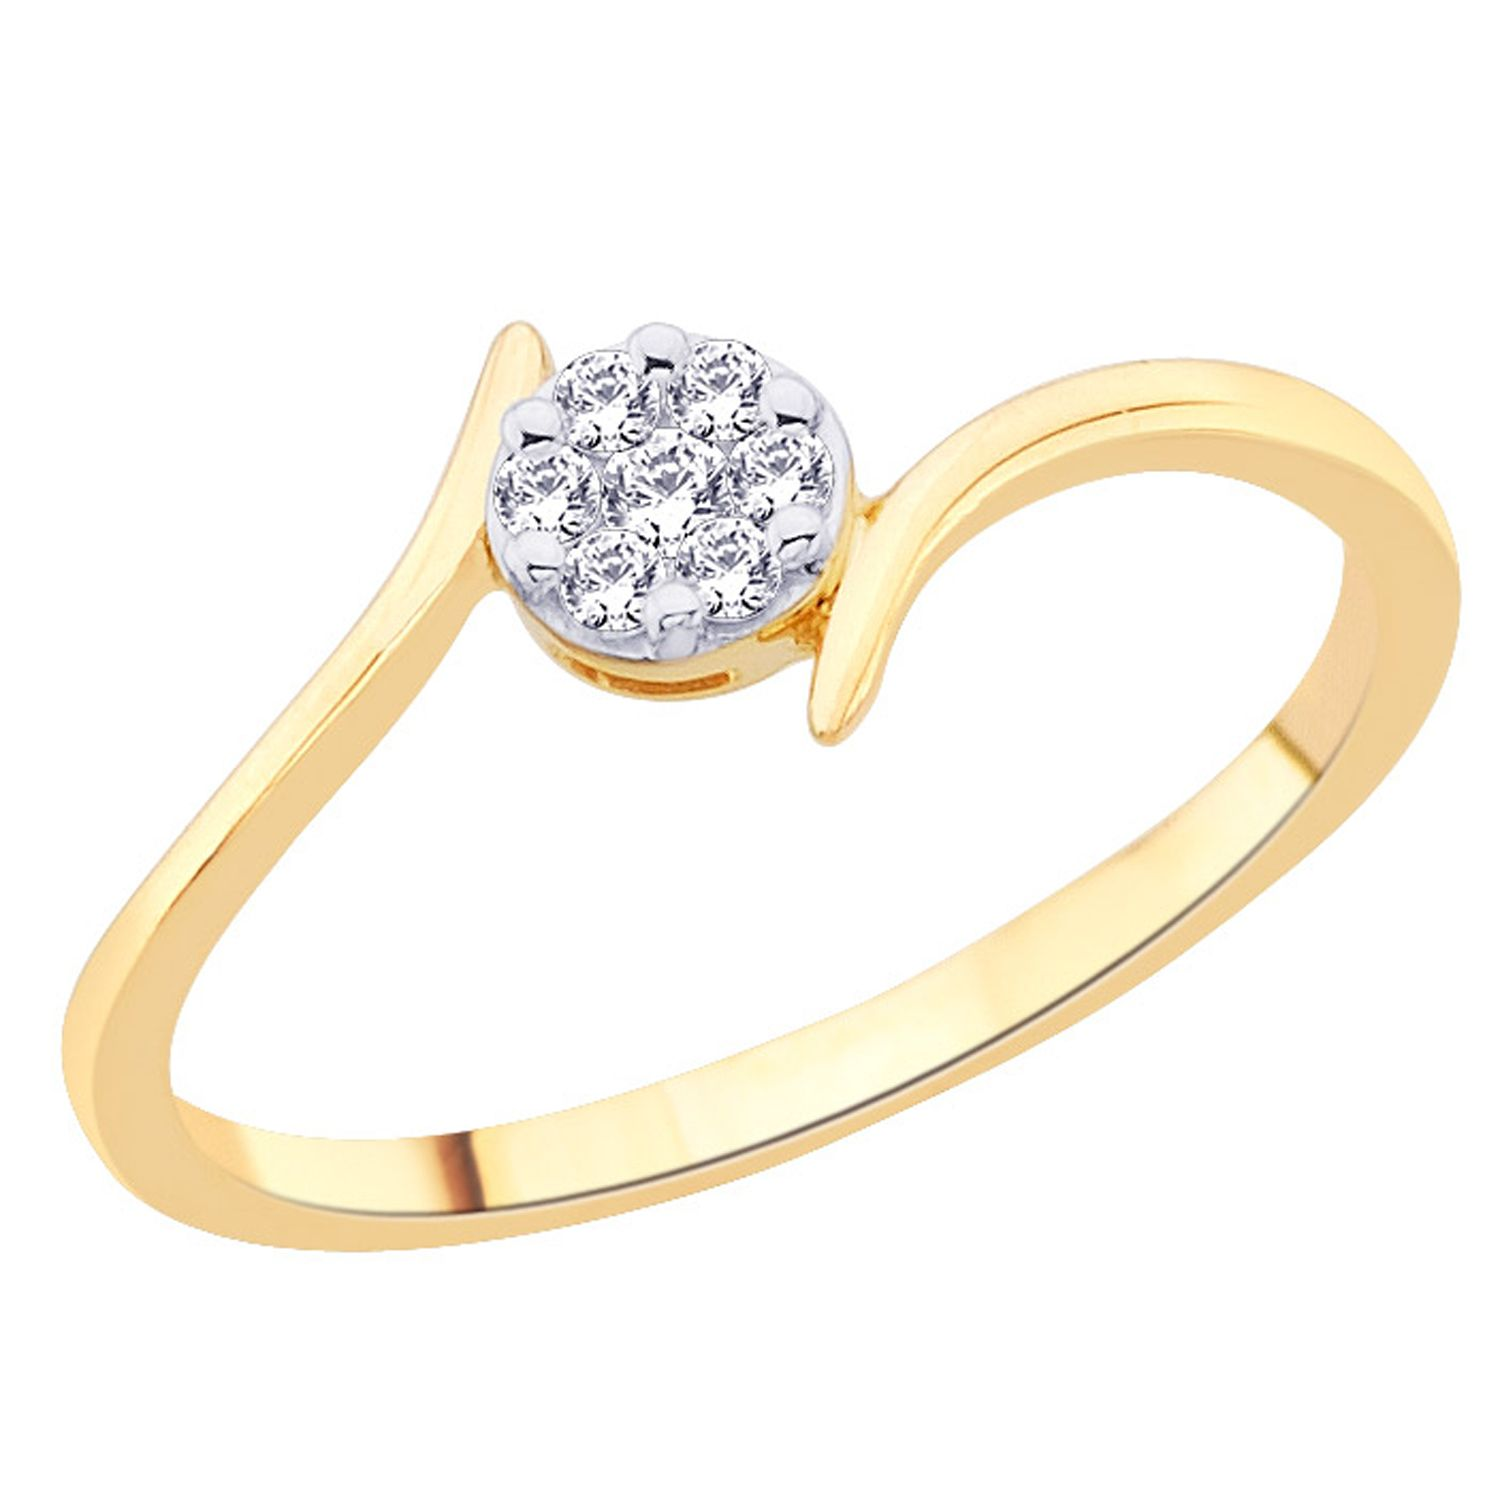 ct shown wb setting tiffany yellow ml tf rings co diamond band wedding the jewellery gold engagement with